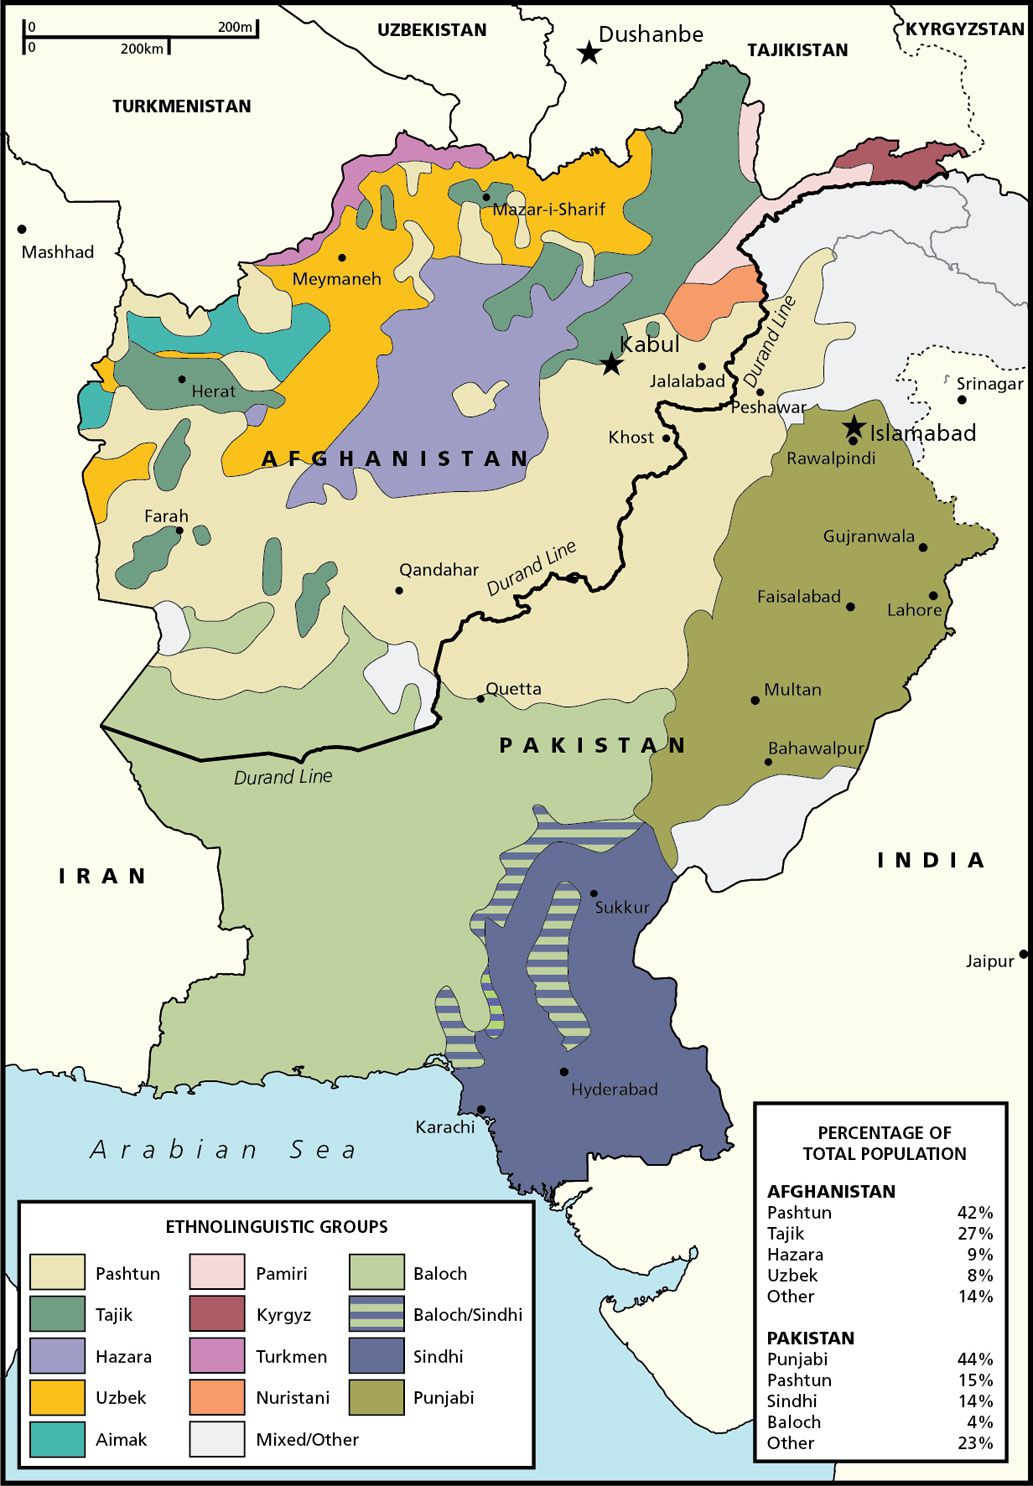 Afghanistan and stan Ethnic Groups | National Geographic ... on msn india, partition of india, research on india, five-year plans of india,